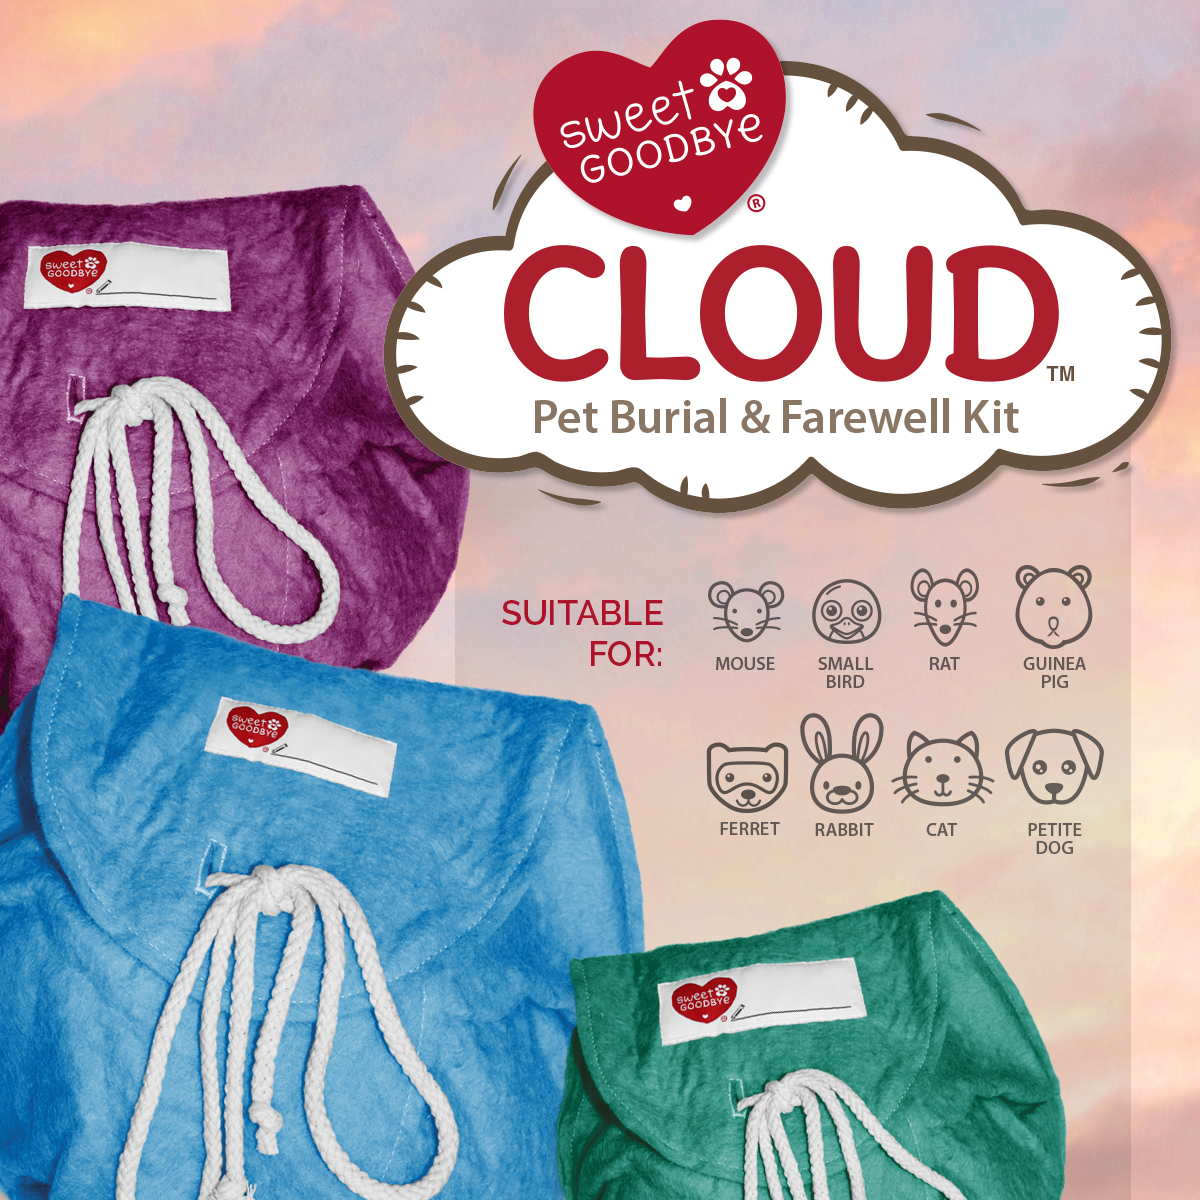 Cloud Pet Burial & Farewell Kit - Small Animals gallery image